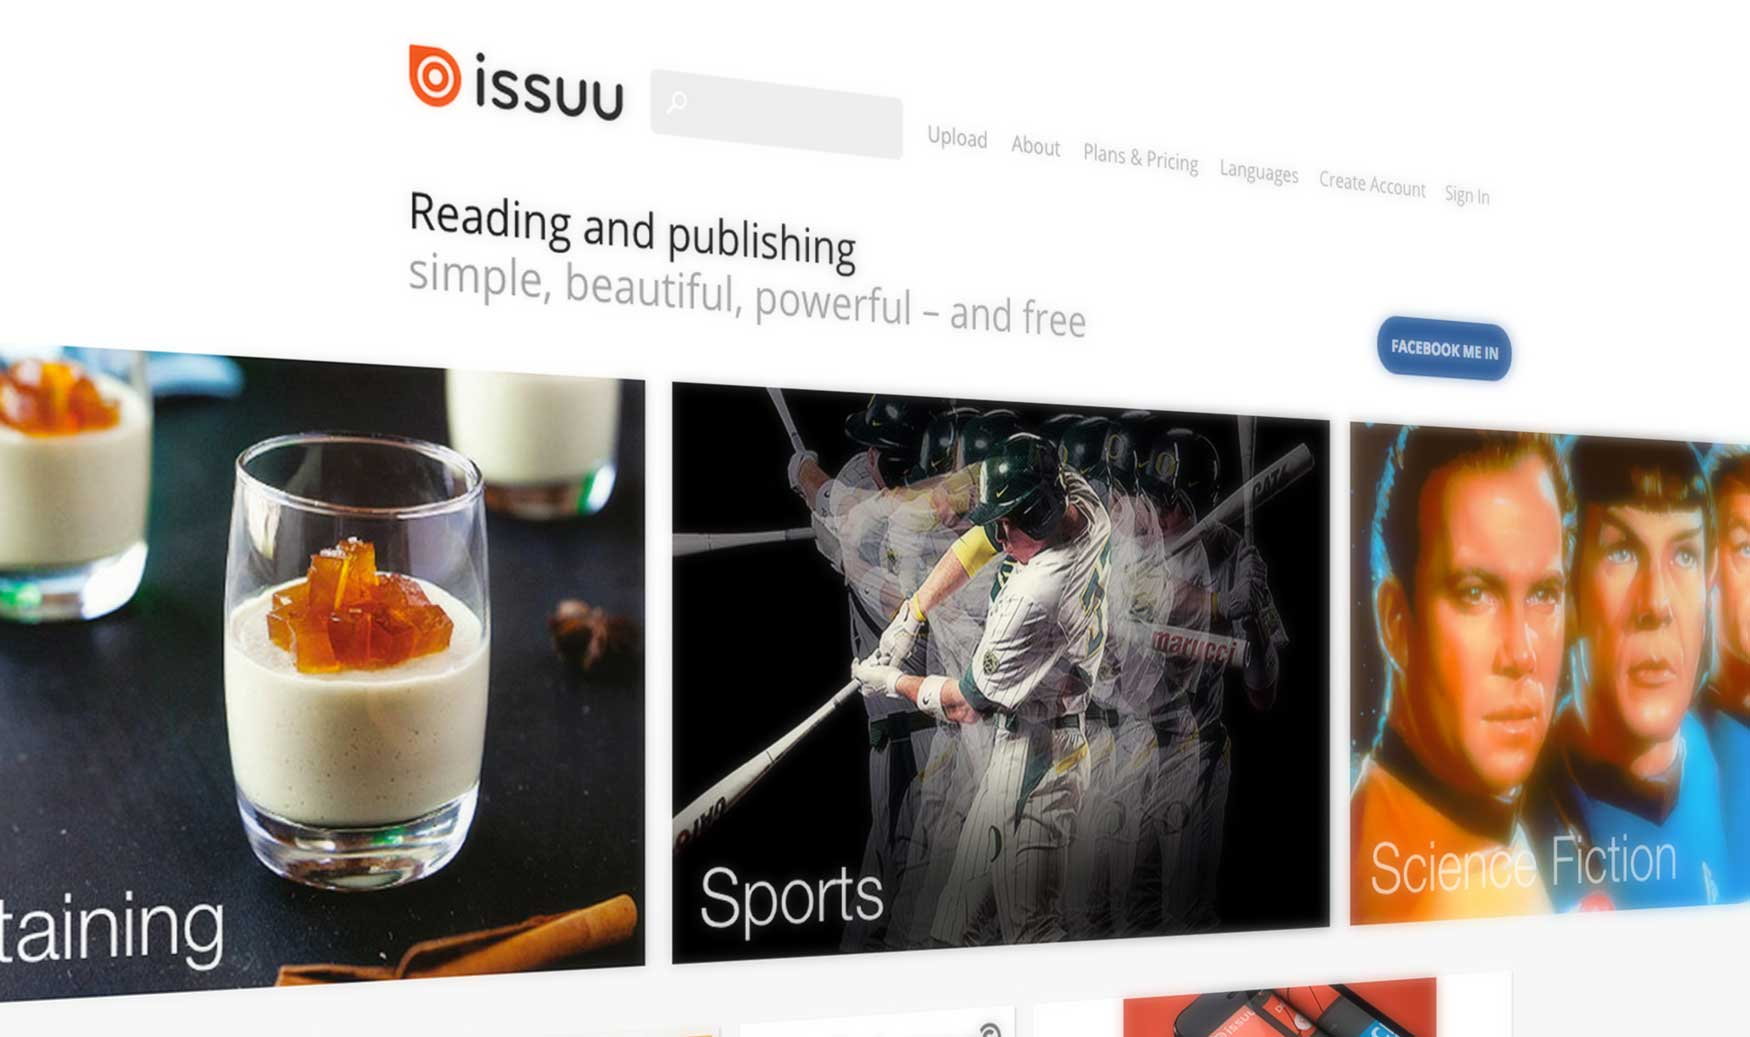 issuu features